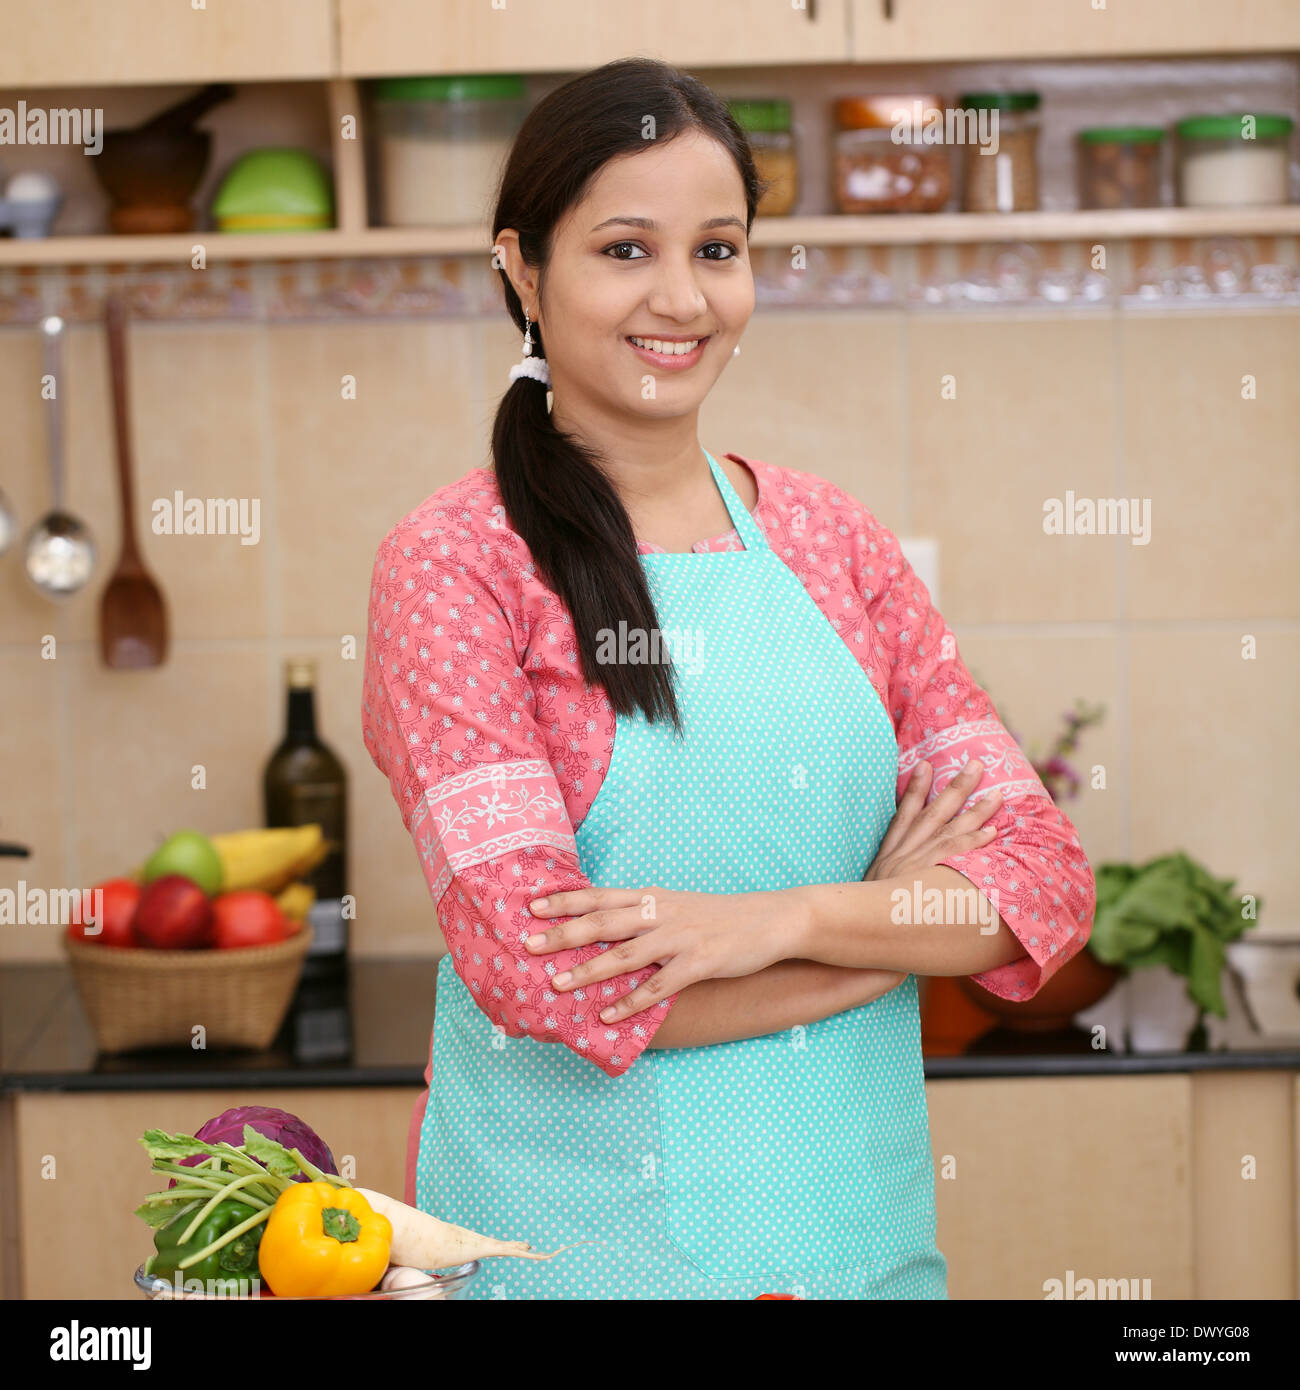 Smiling Young Indian Woman In Kitchen With Fresh Vegetablets And